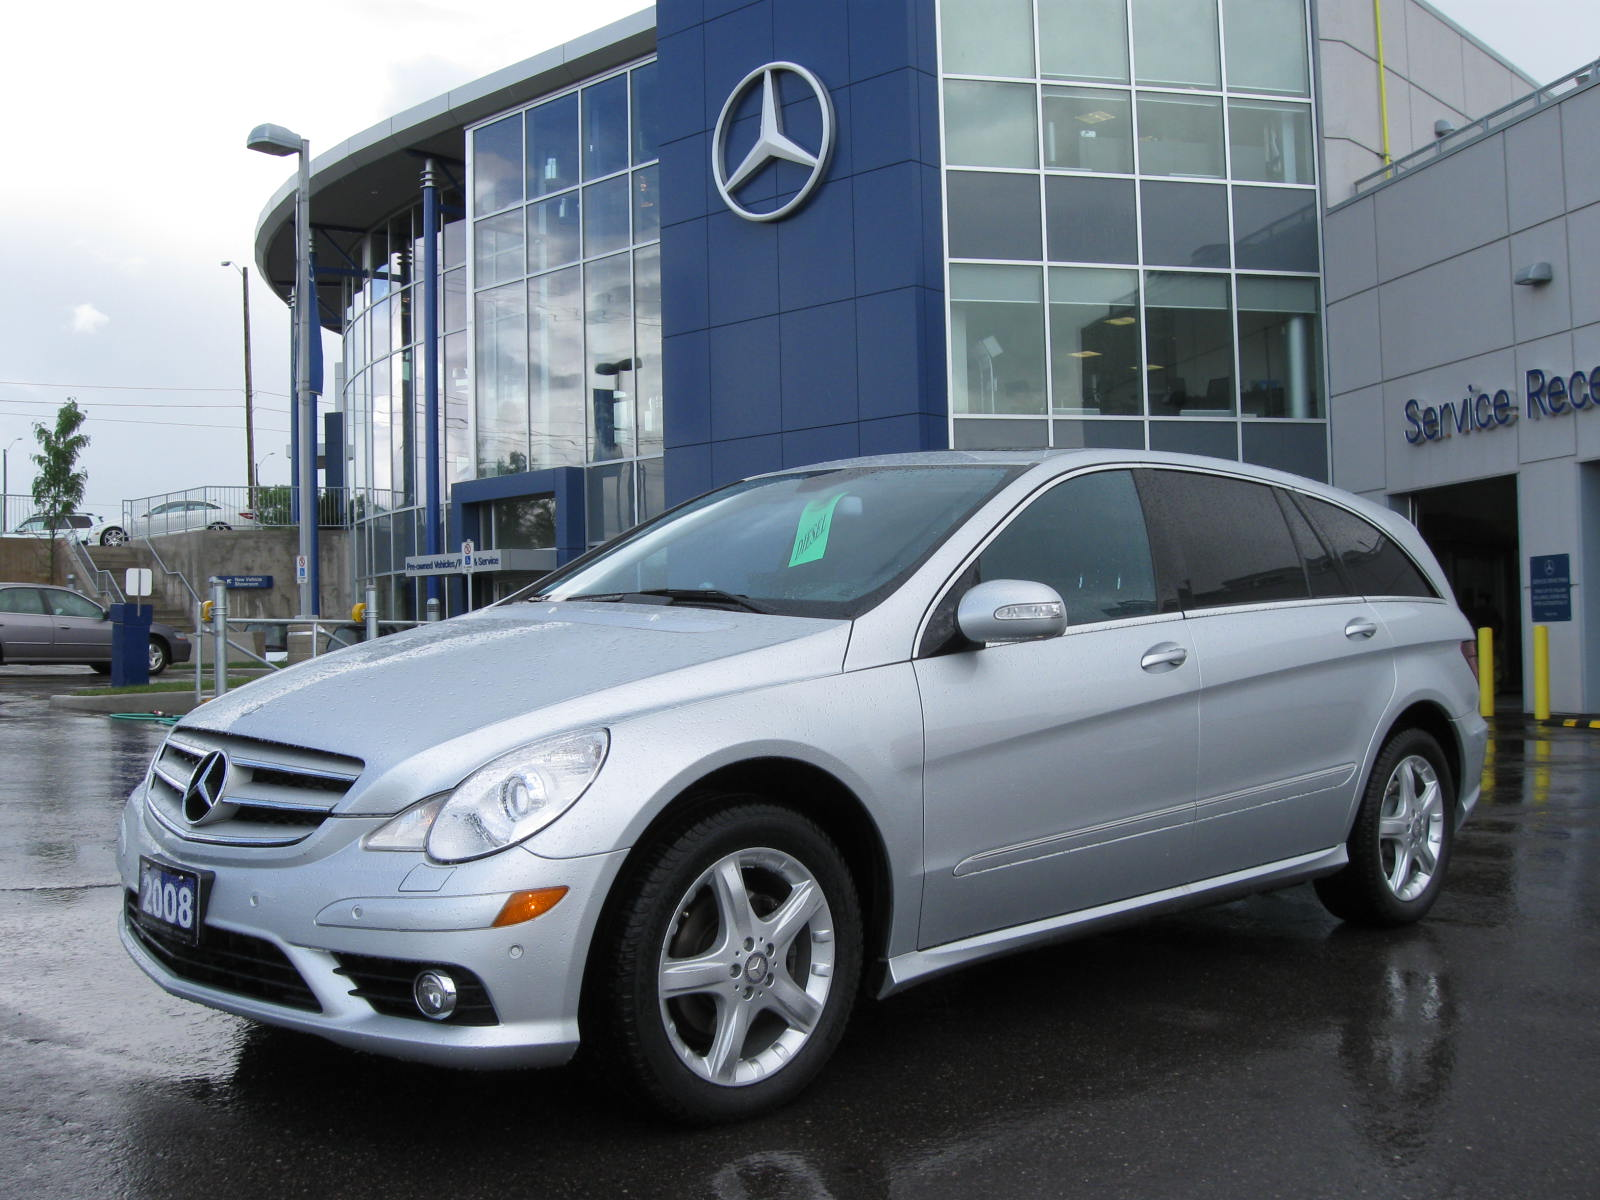 Mercedes benz r 320 cdi photos reviews news specs buy car for 320 mercedes benz